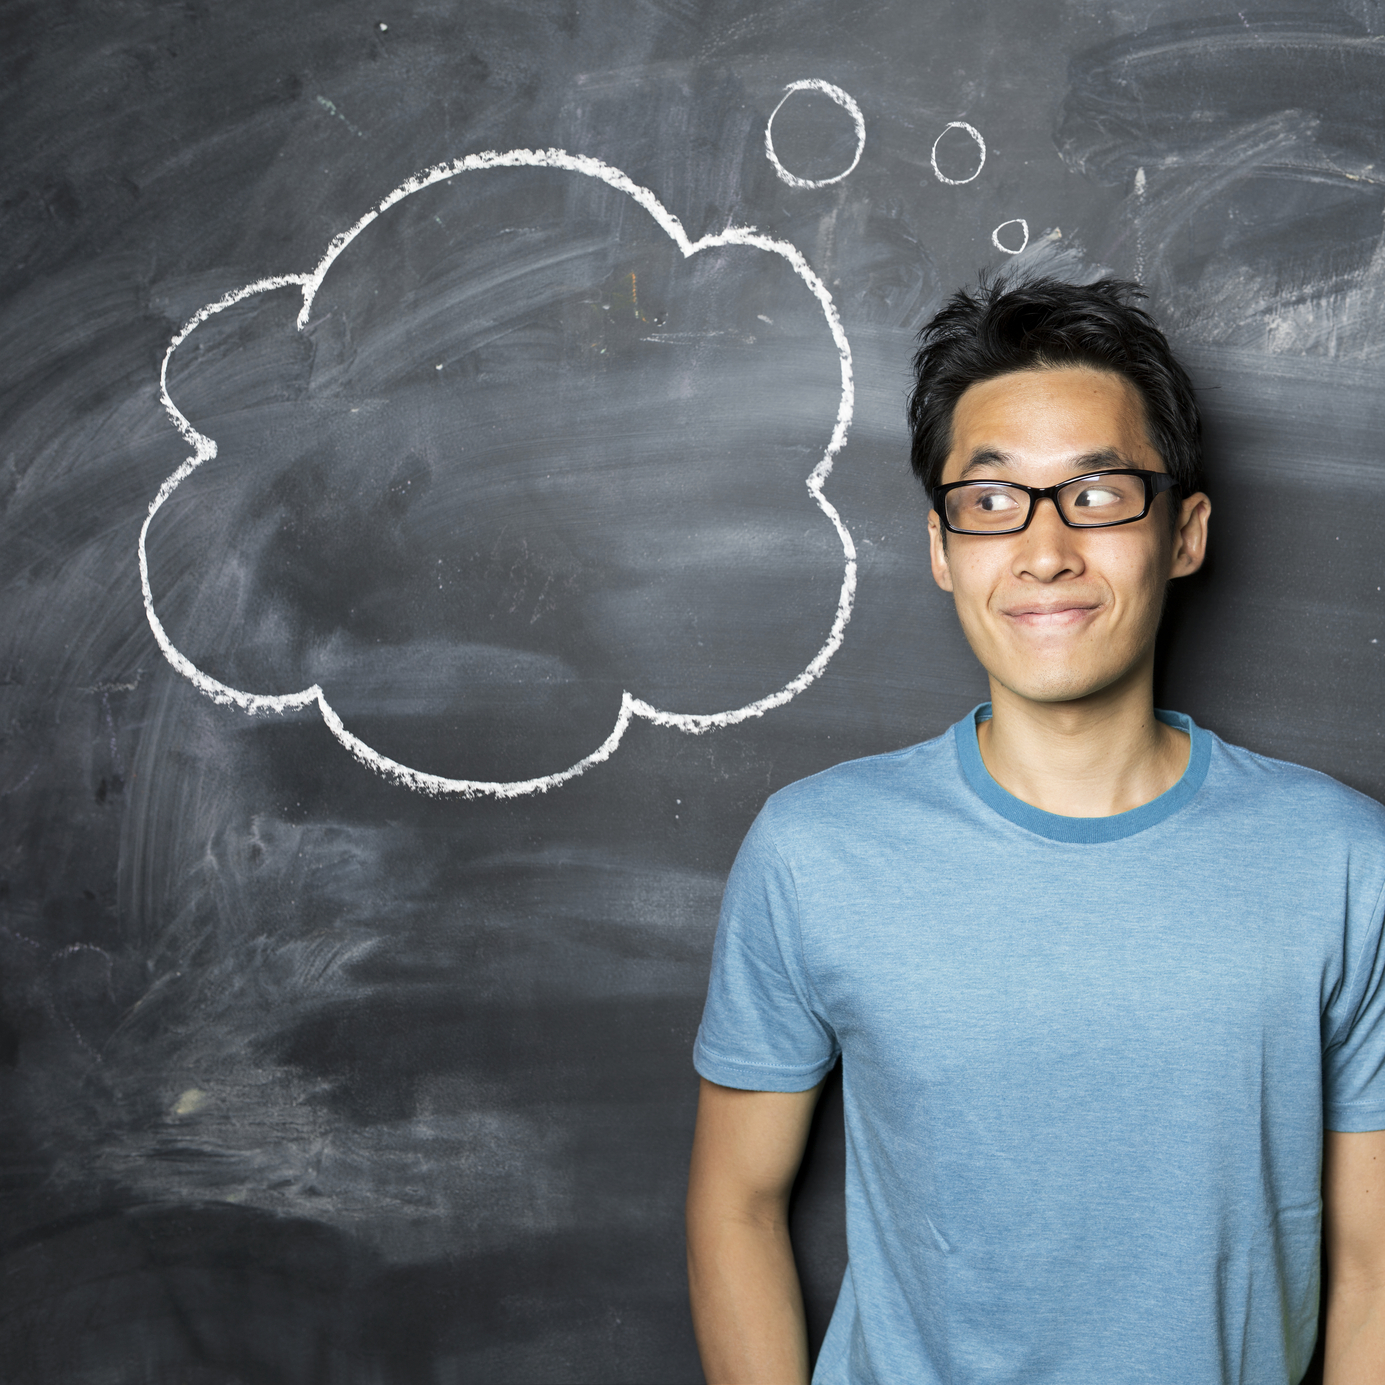 chinese-man-standing-next-to-thought-bubble-drawn-on-chalkboard-000029506162-medium.jpg